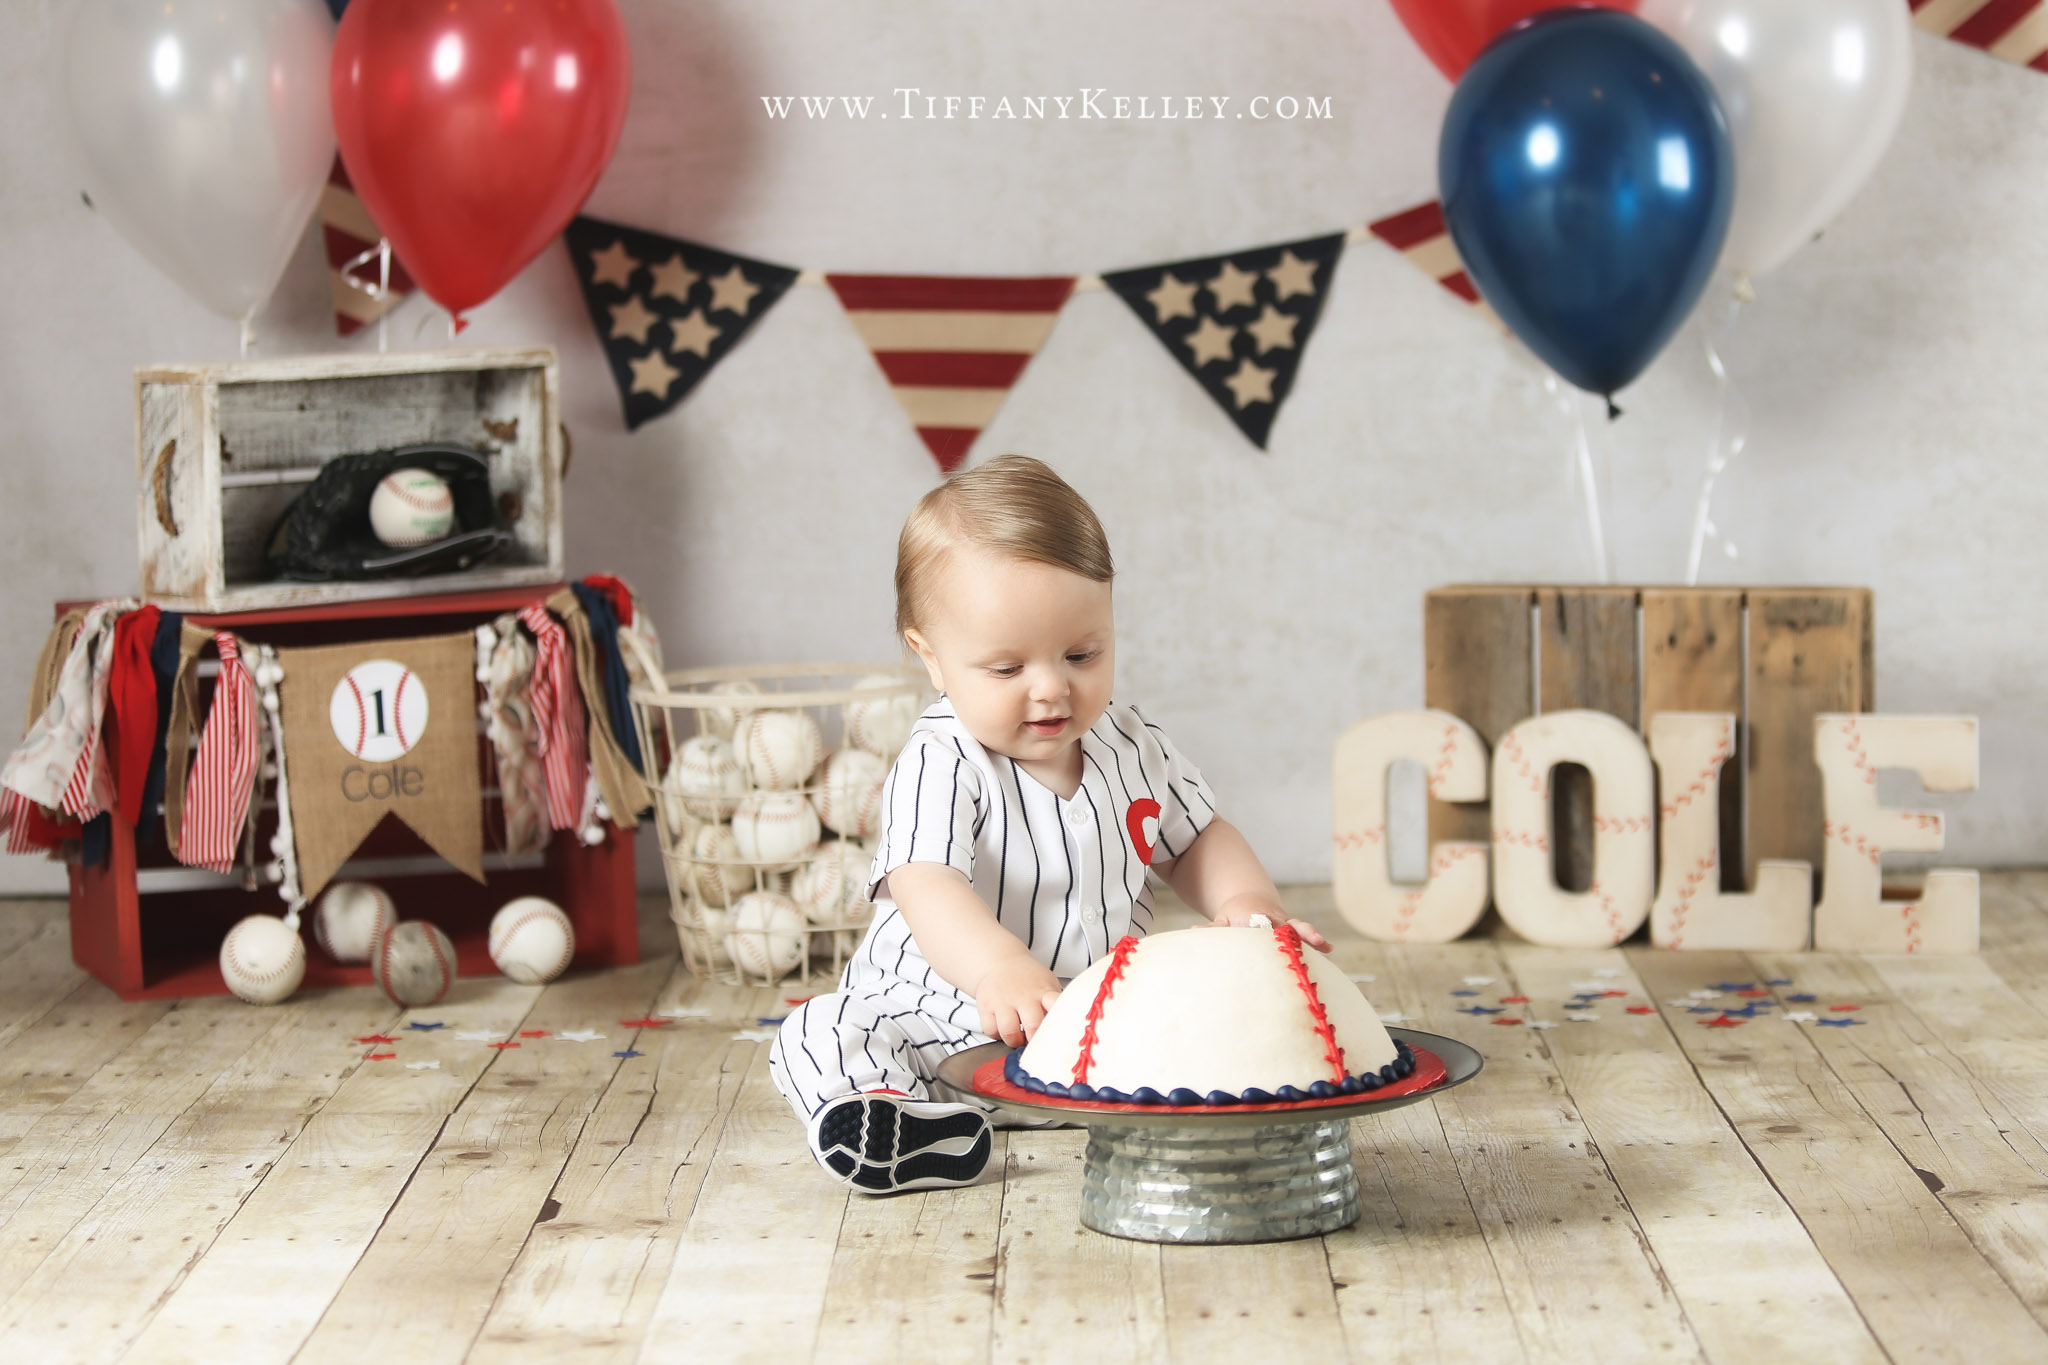 Cole Year Old Birthday Cake Smash Session Branson Missouri Family Photographer Tiffany Kelley Photography